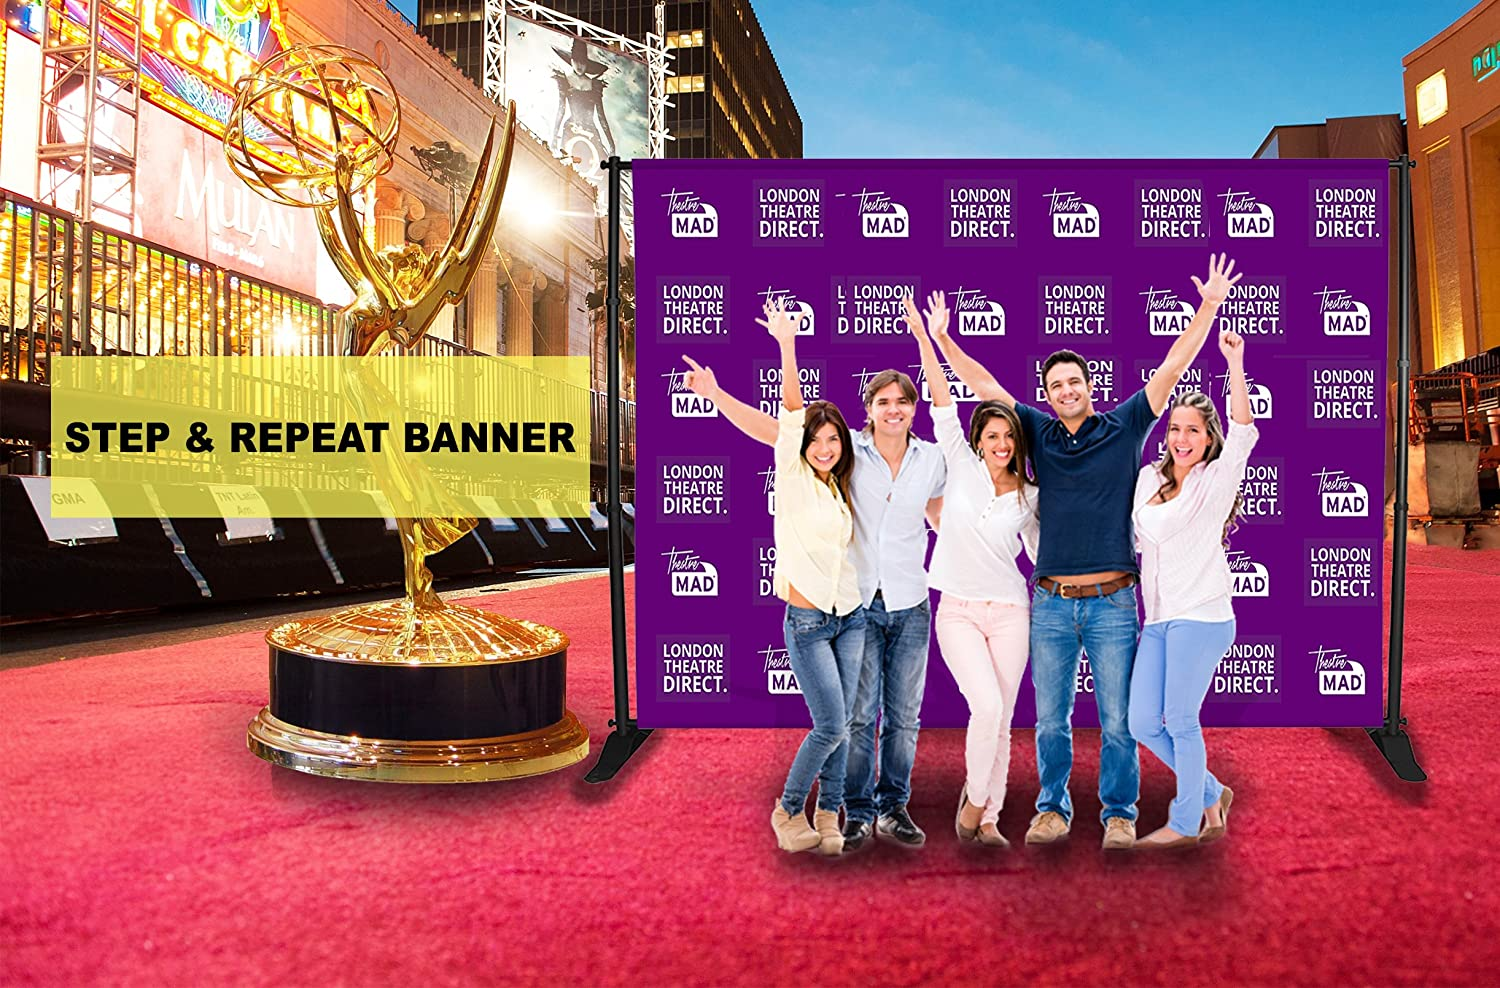 80th Personalized Step and Repeat Party Vinyl Backdrop 3x5ft  5x7ft 8x10ft Royal Birthday Graduation